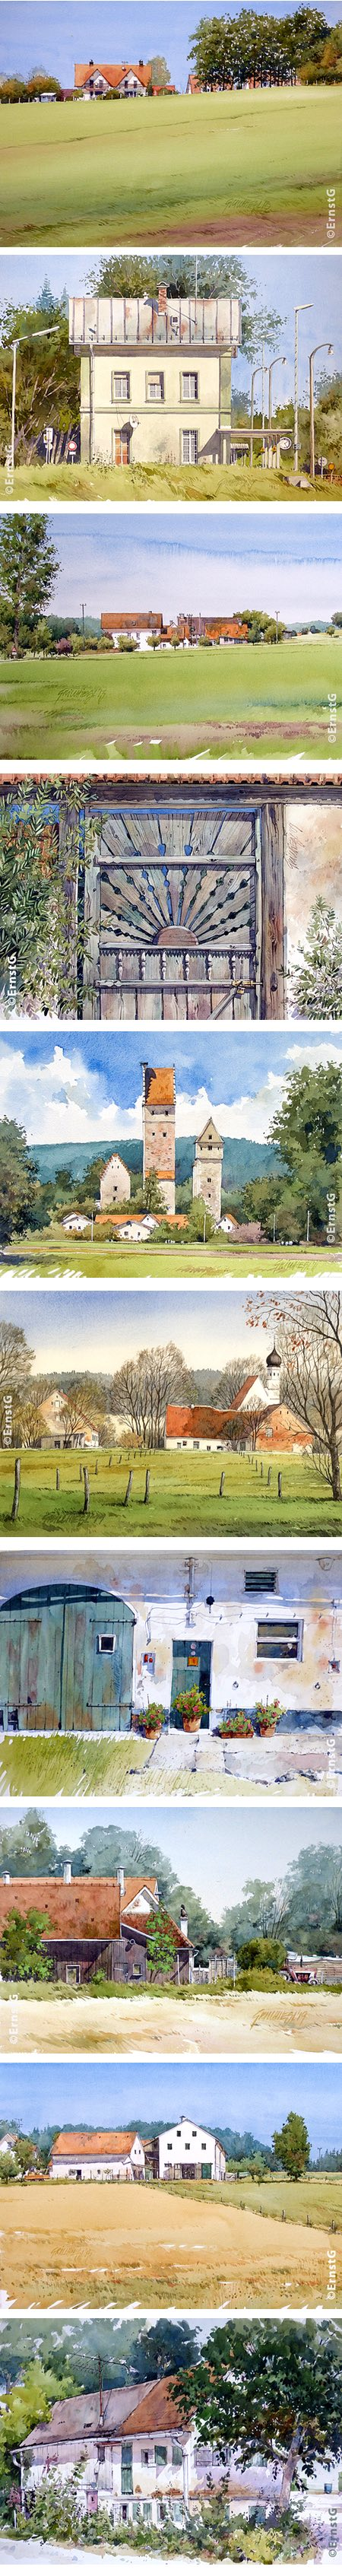 Ernst Grillhiesl watercolors